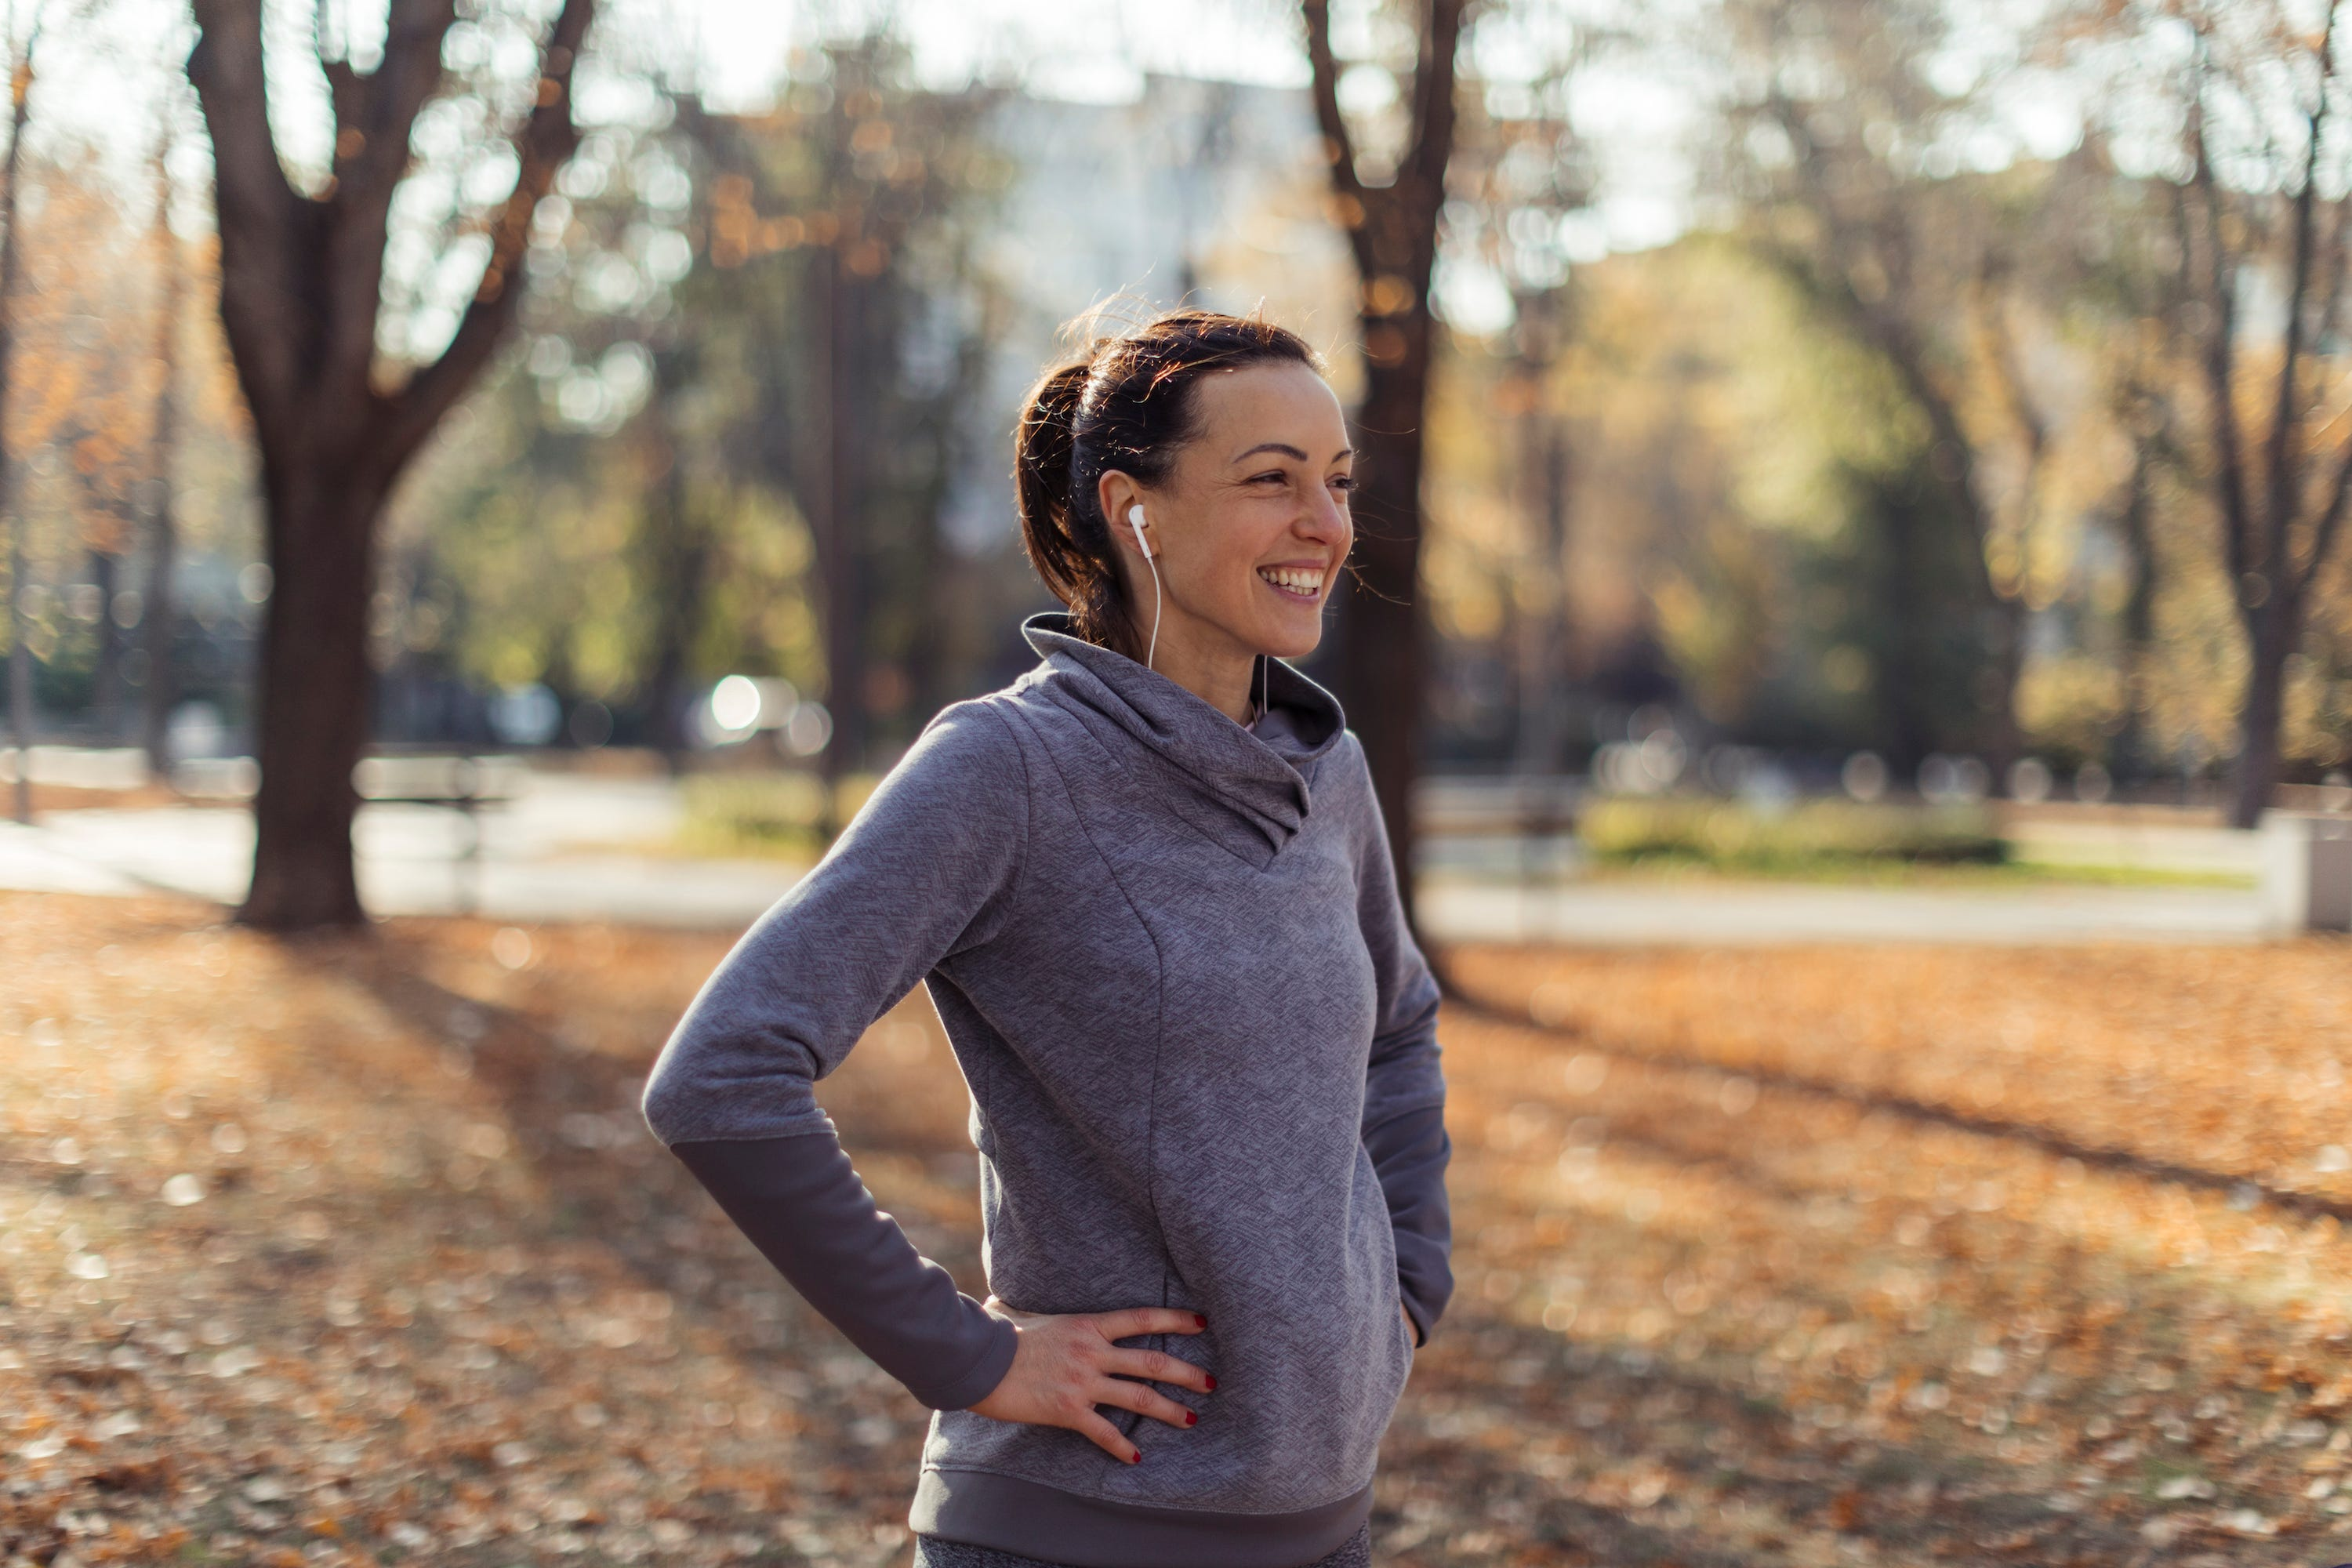 Your full guide to fasted cardio: benefits, how to do it safely and what to eat afterwards